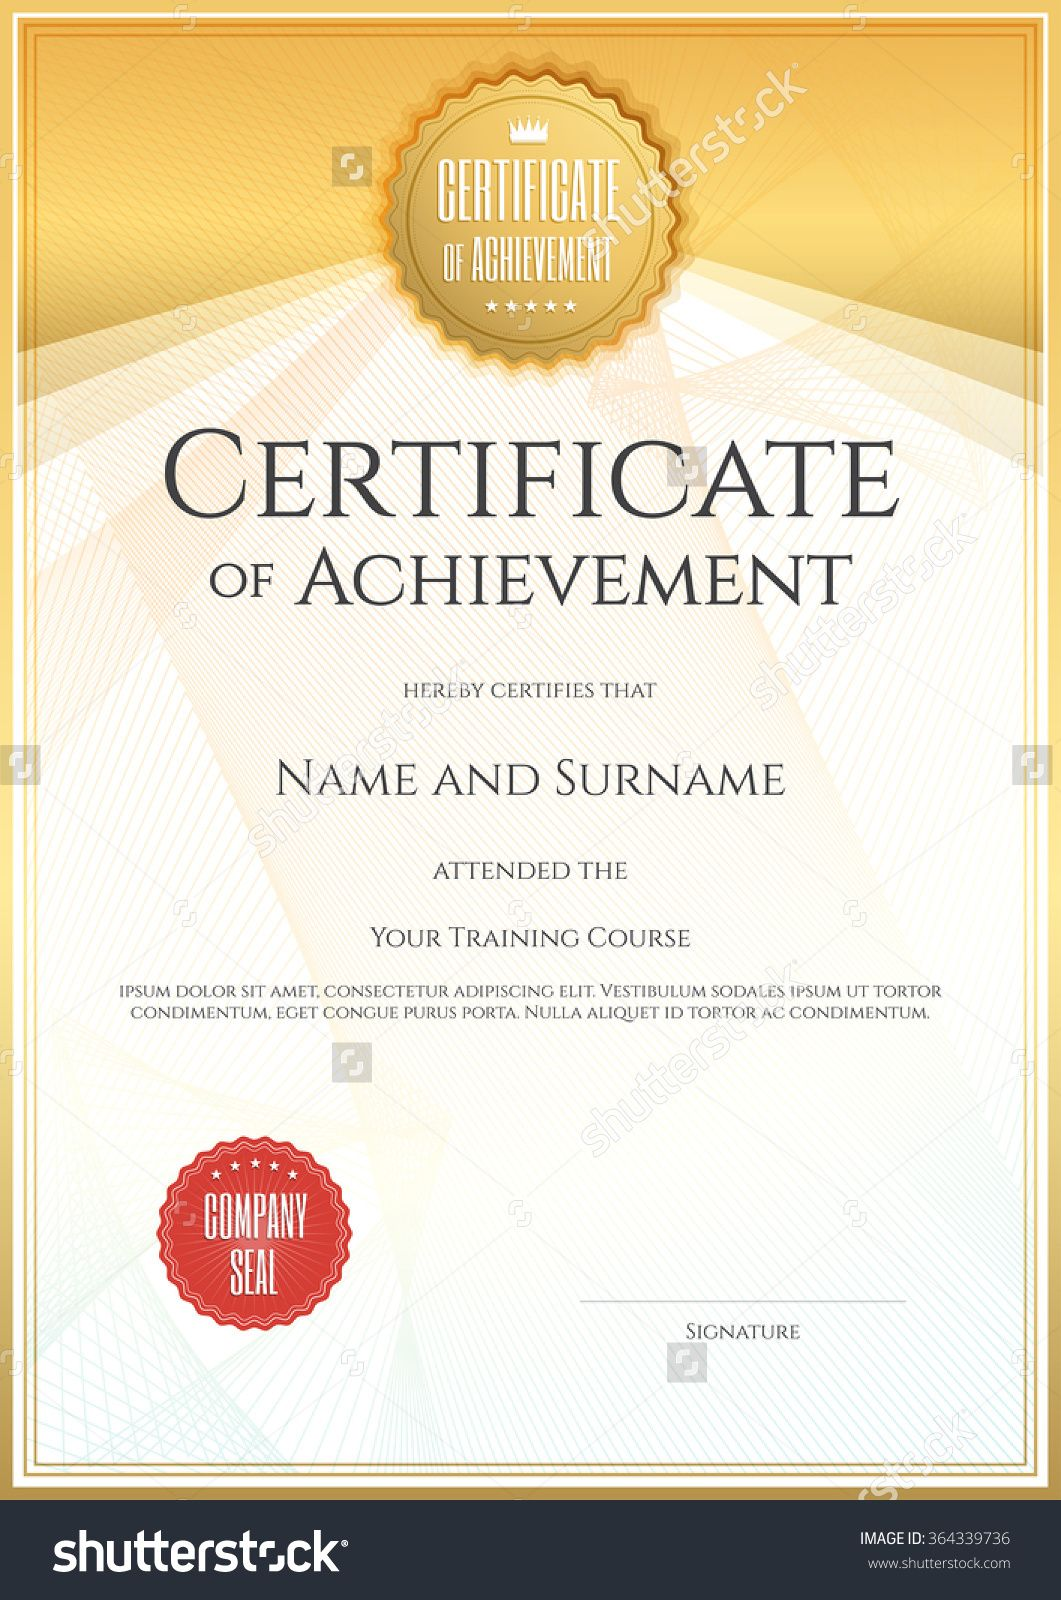 Certificate Design Format Sample Of Company Profile ...